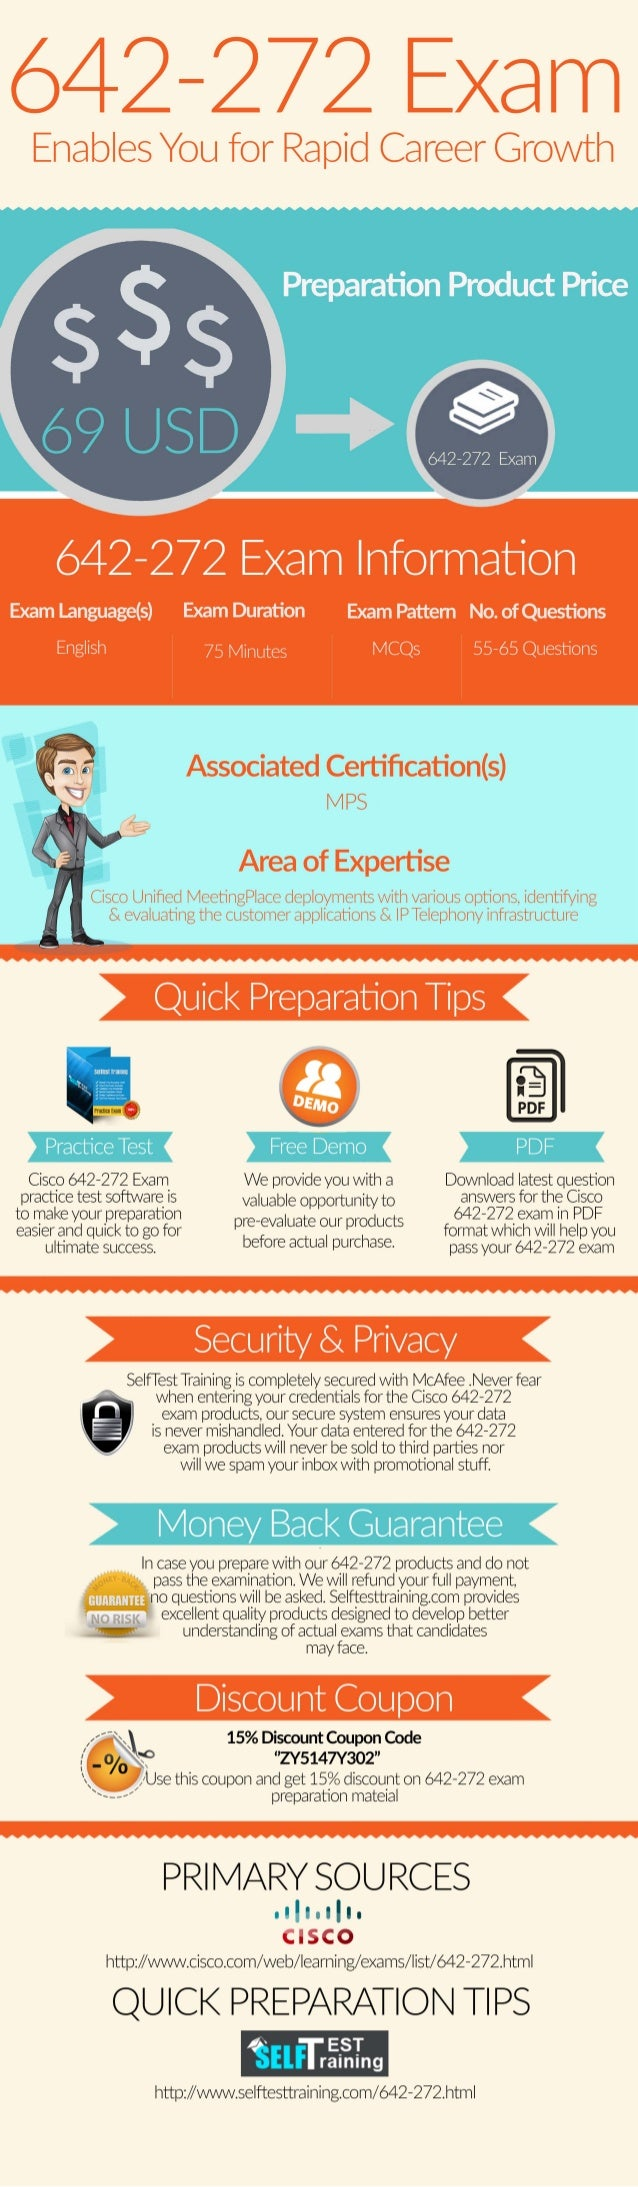 642-272 exam questions - 100% success guaranteed [Infographic]